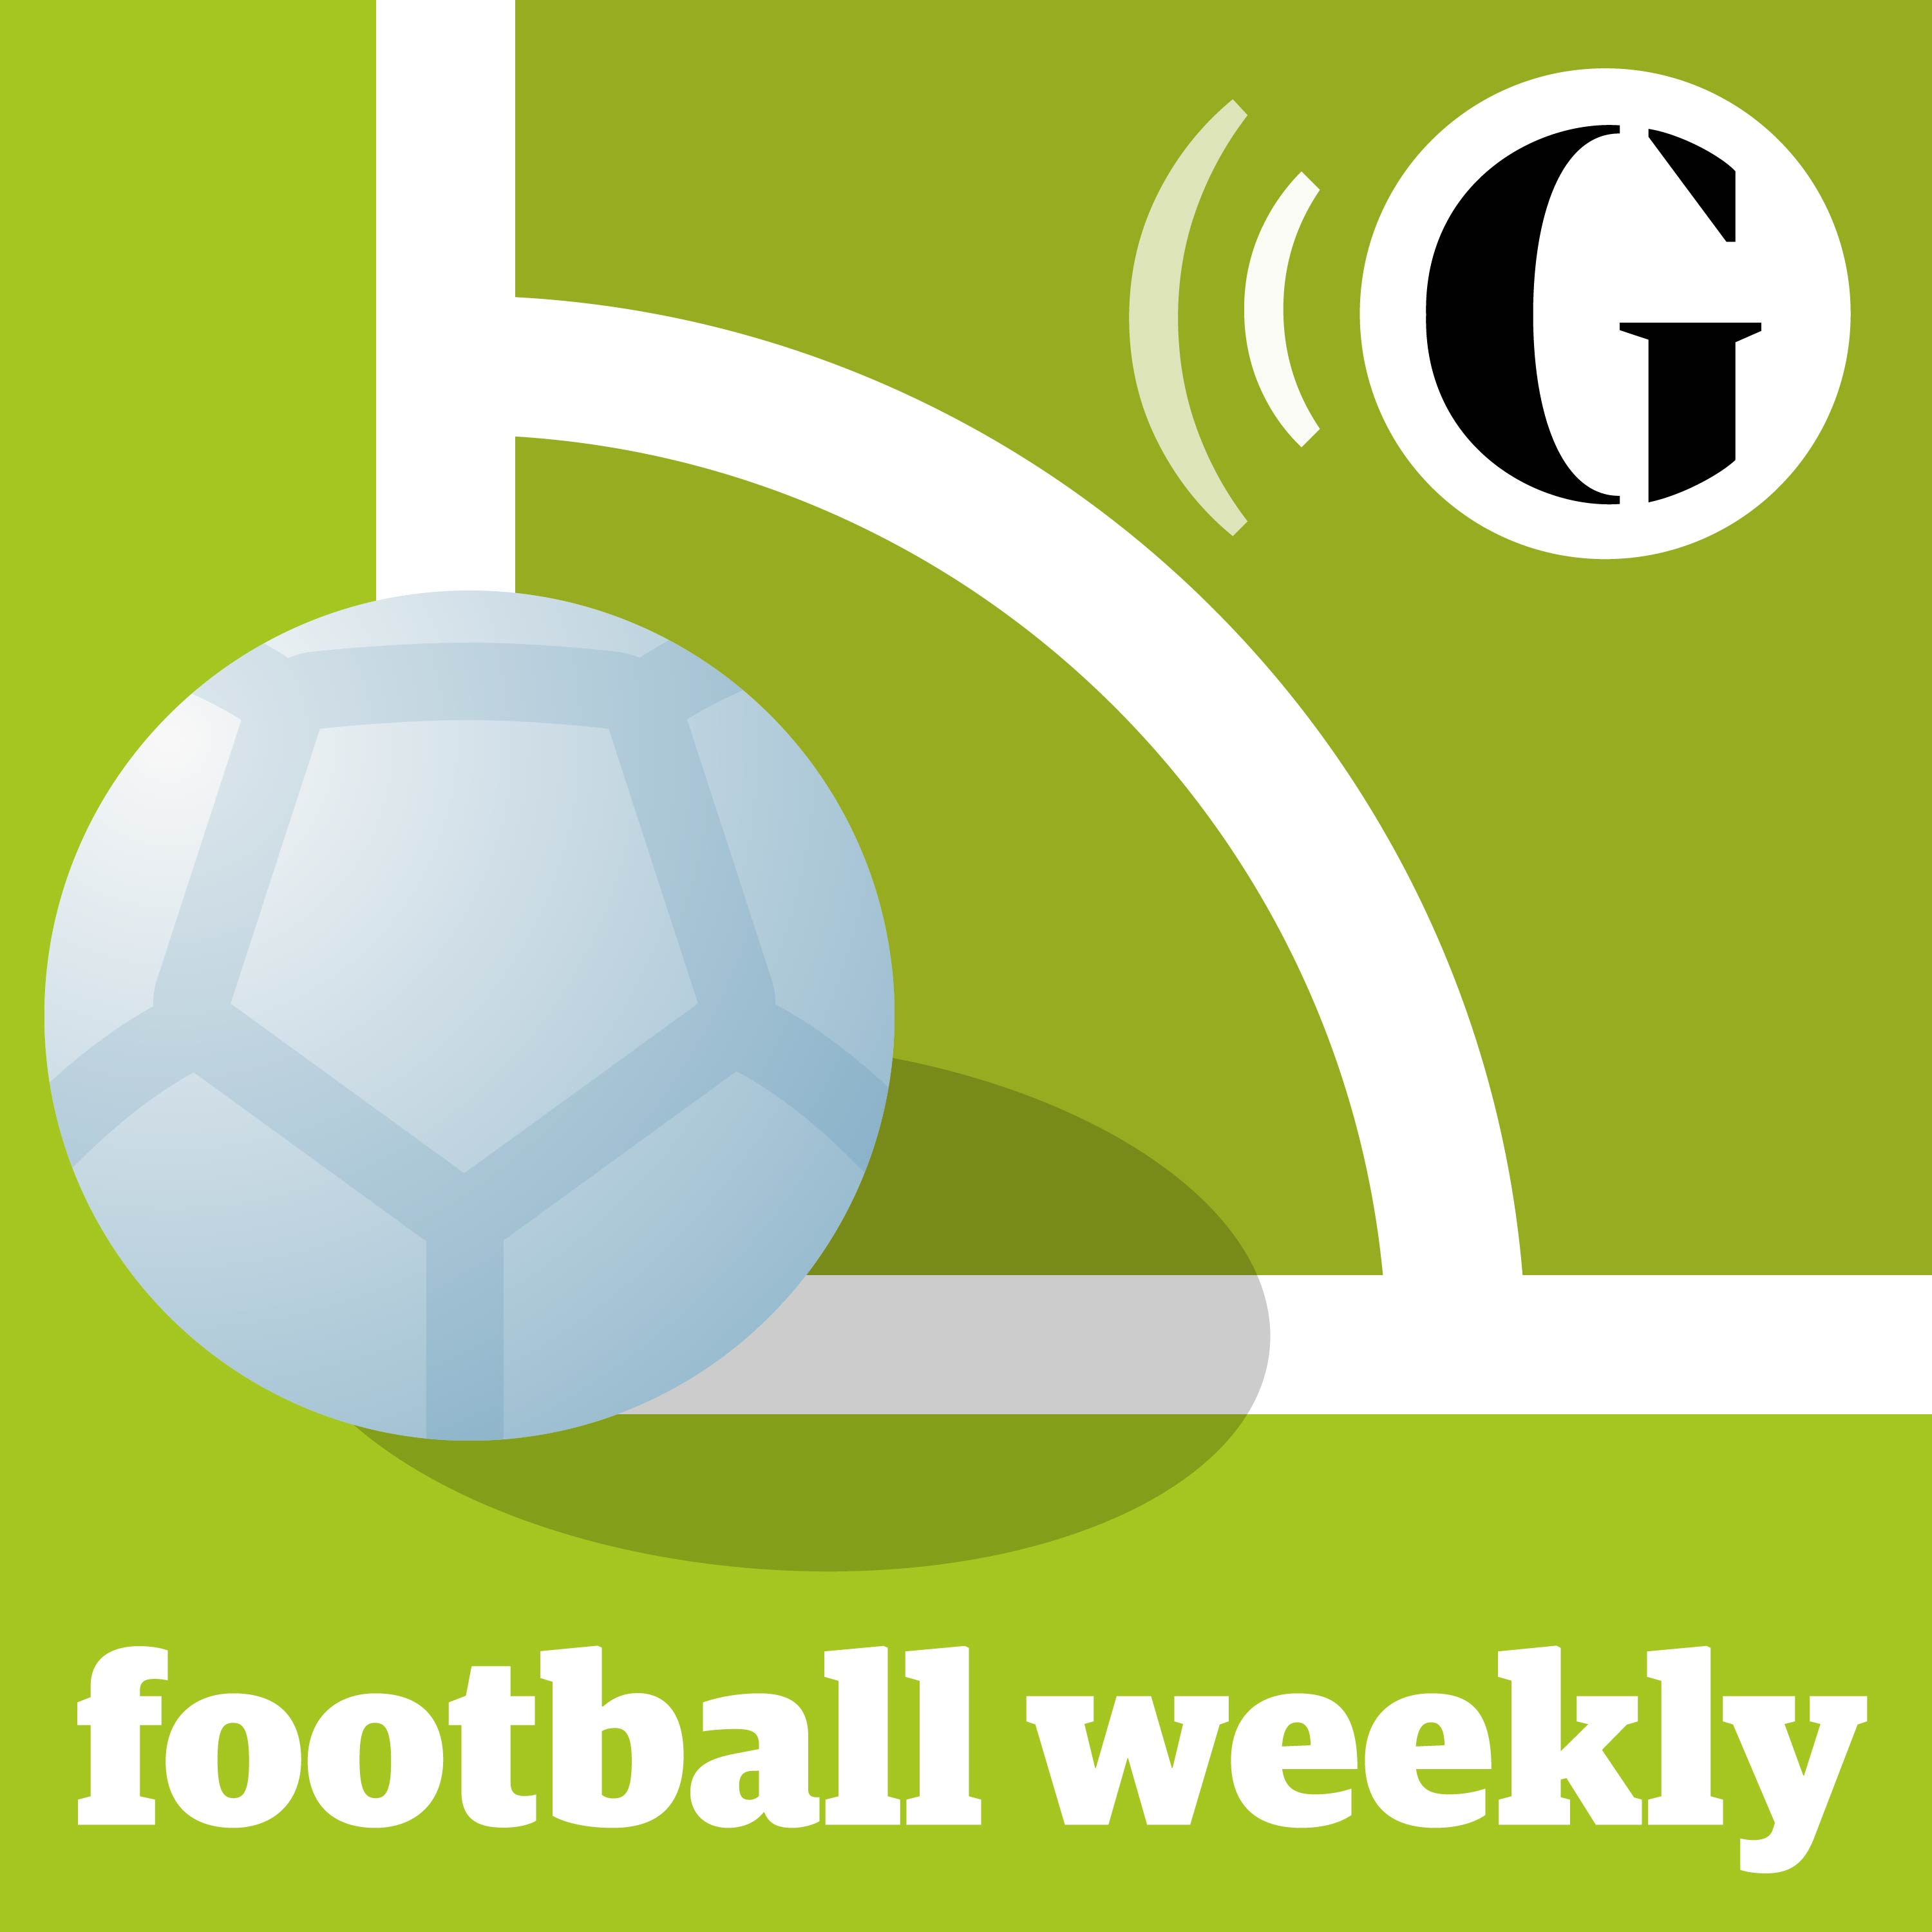 Psg Party Tight Trousers And Koeman S Move To Barcelona Football Weekly Football The Guardian